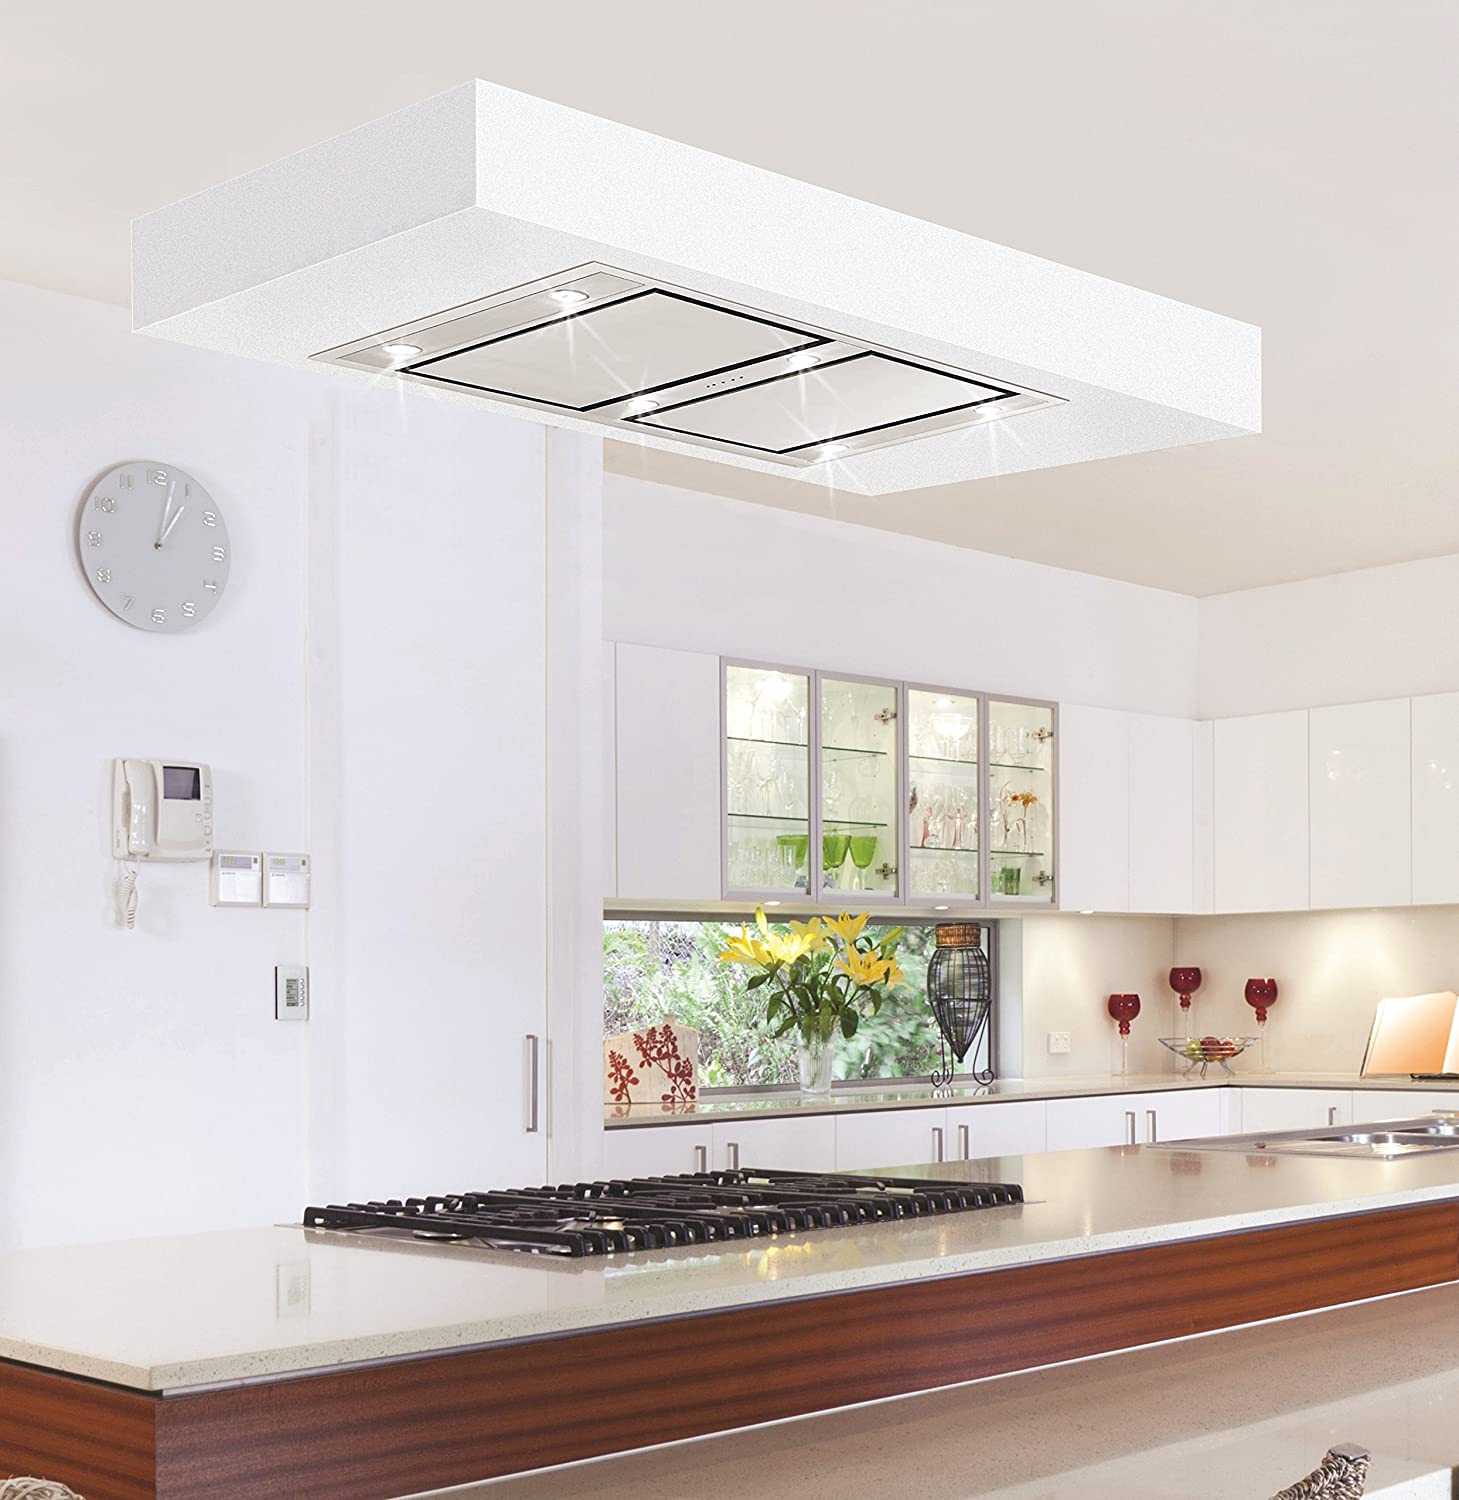 Ceiling Mounted Kitchen Extractor Fan Modern Forms Fans